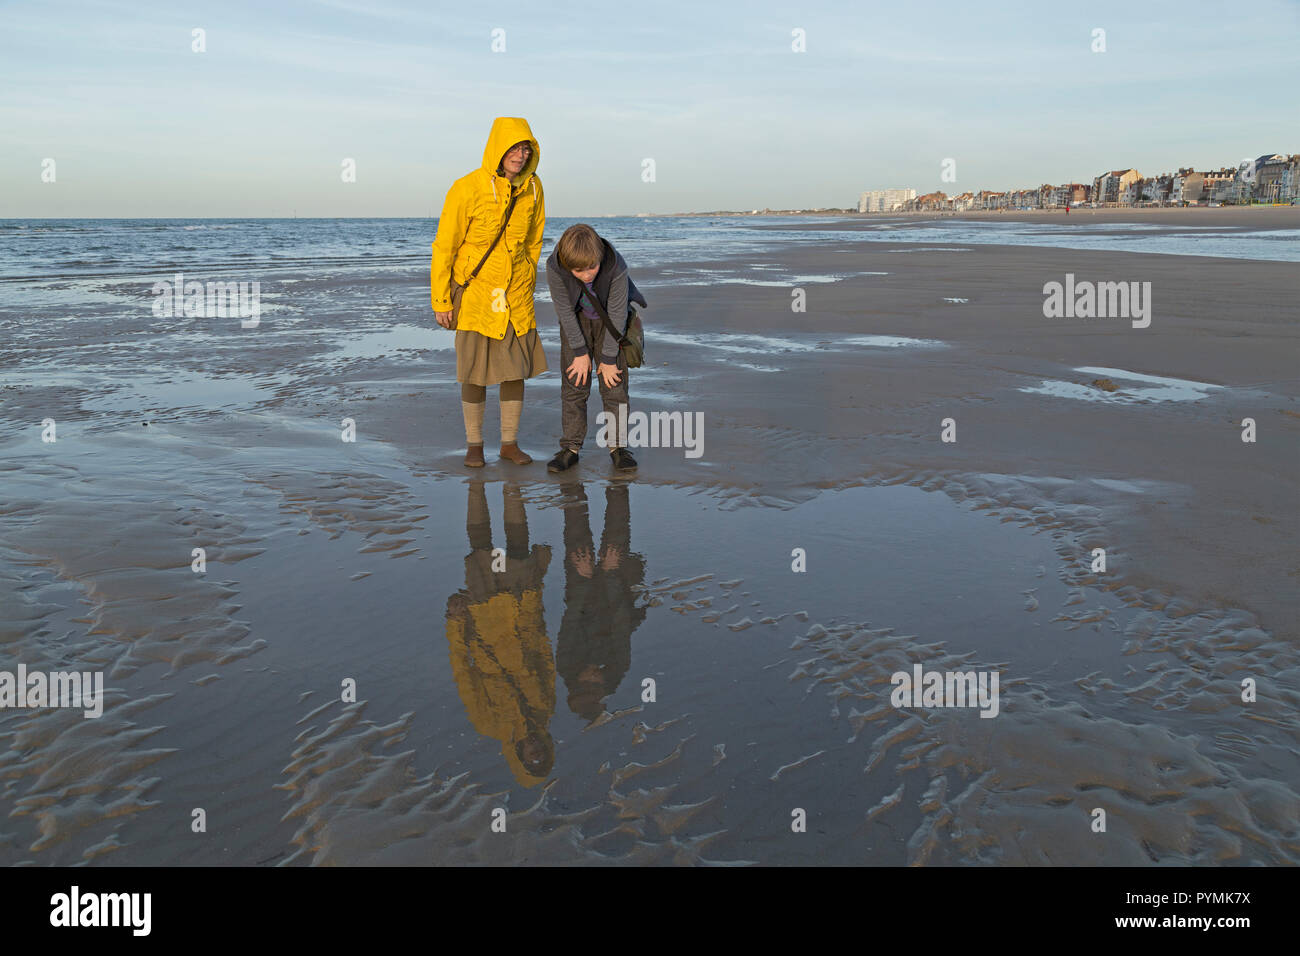 mother and son at the beach, Dunkirk, France - Stock Image